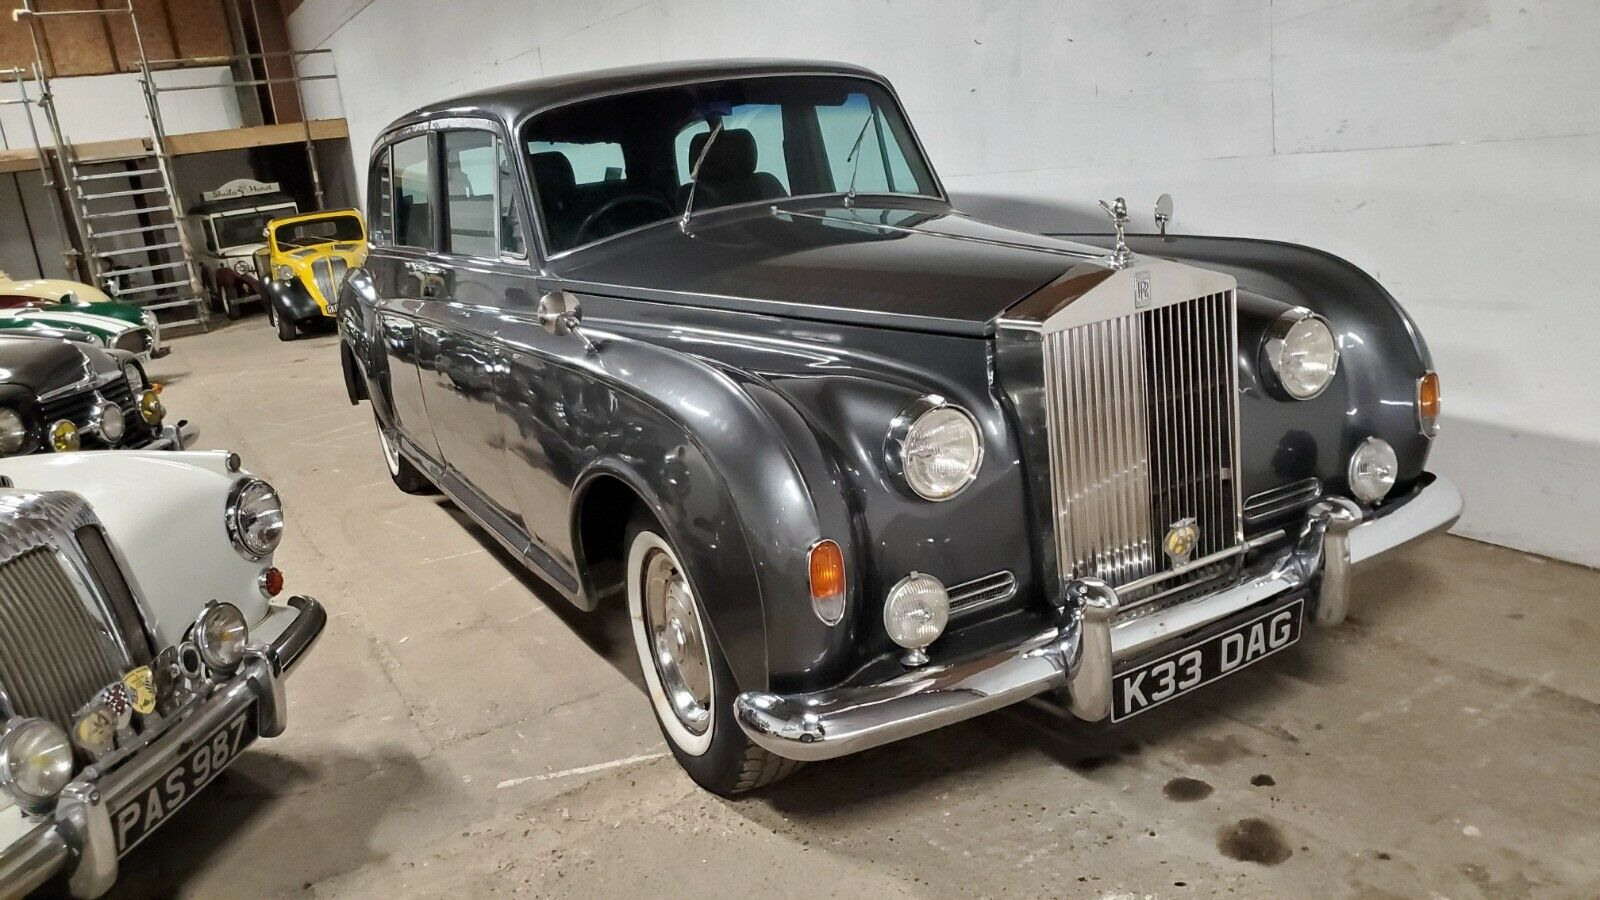 Real Trooper Mounts 1960 Rolls-Royce Phantom Body On Isuzu Chassis